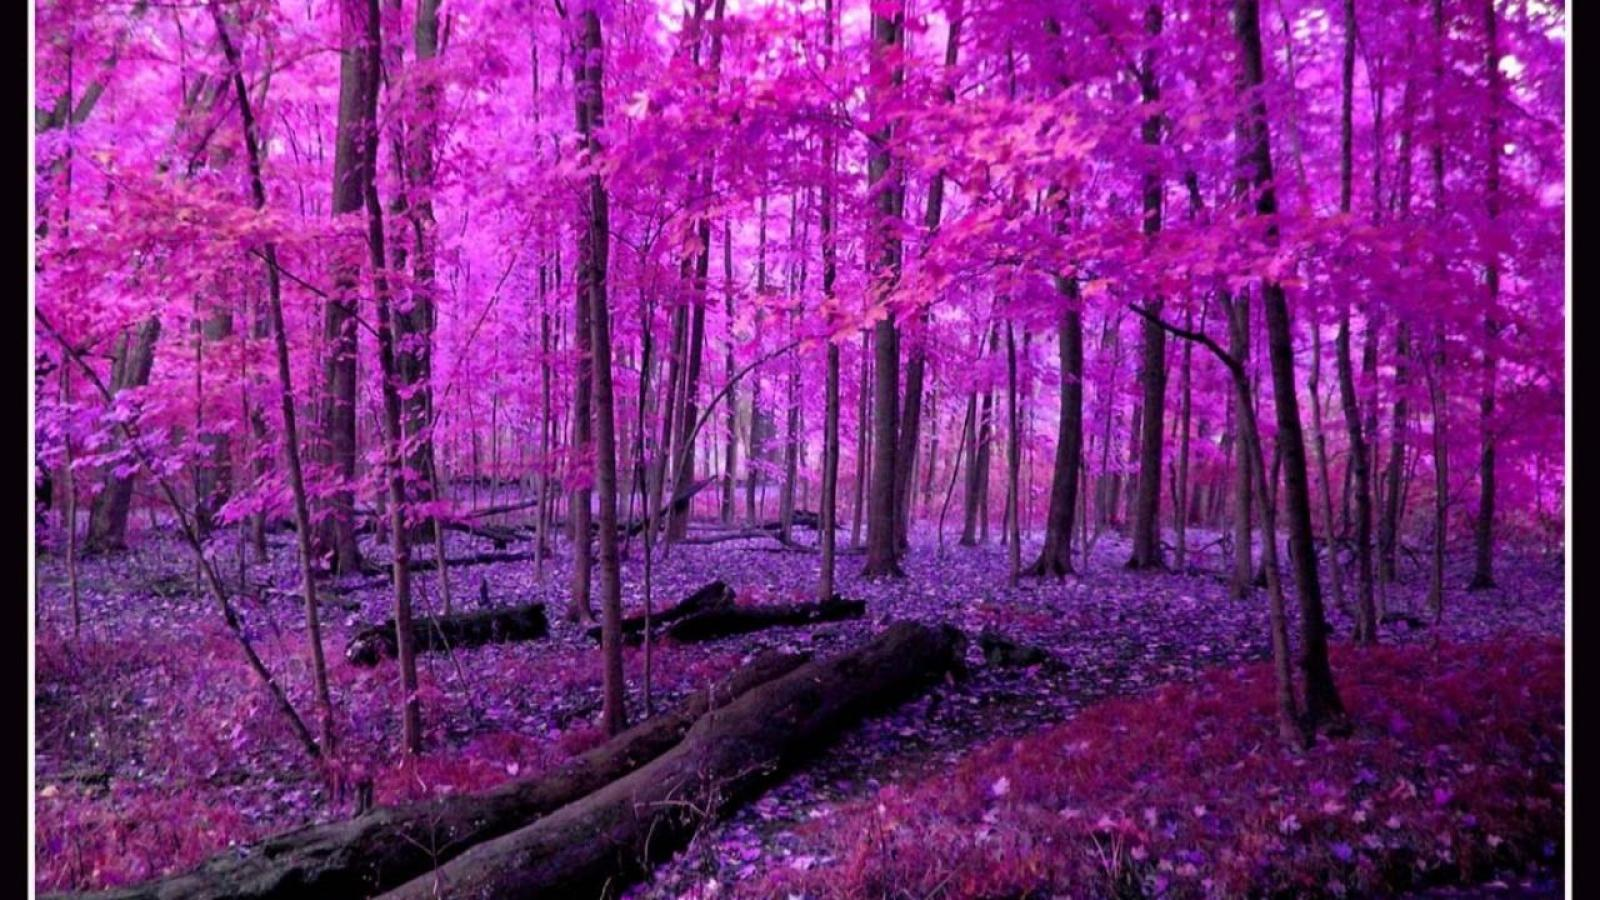 PINK NATURE WALLPAPER   75188   HD Wallpapers   [wallpapersinhqpw] 1600x900